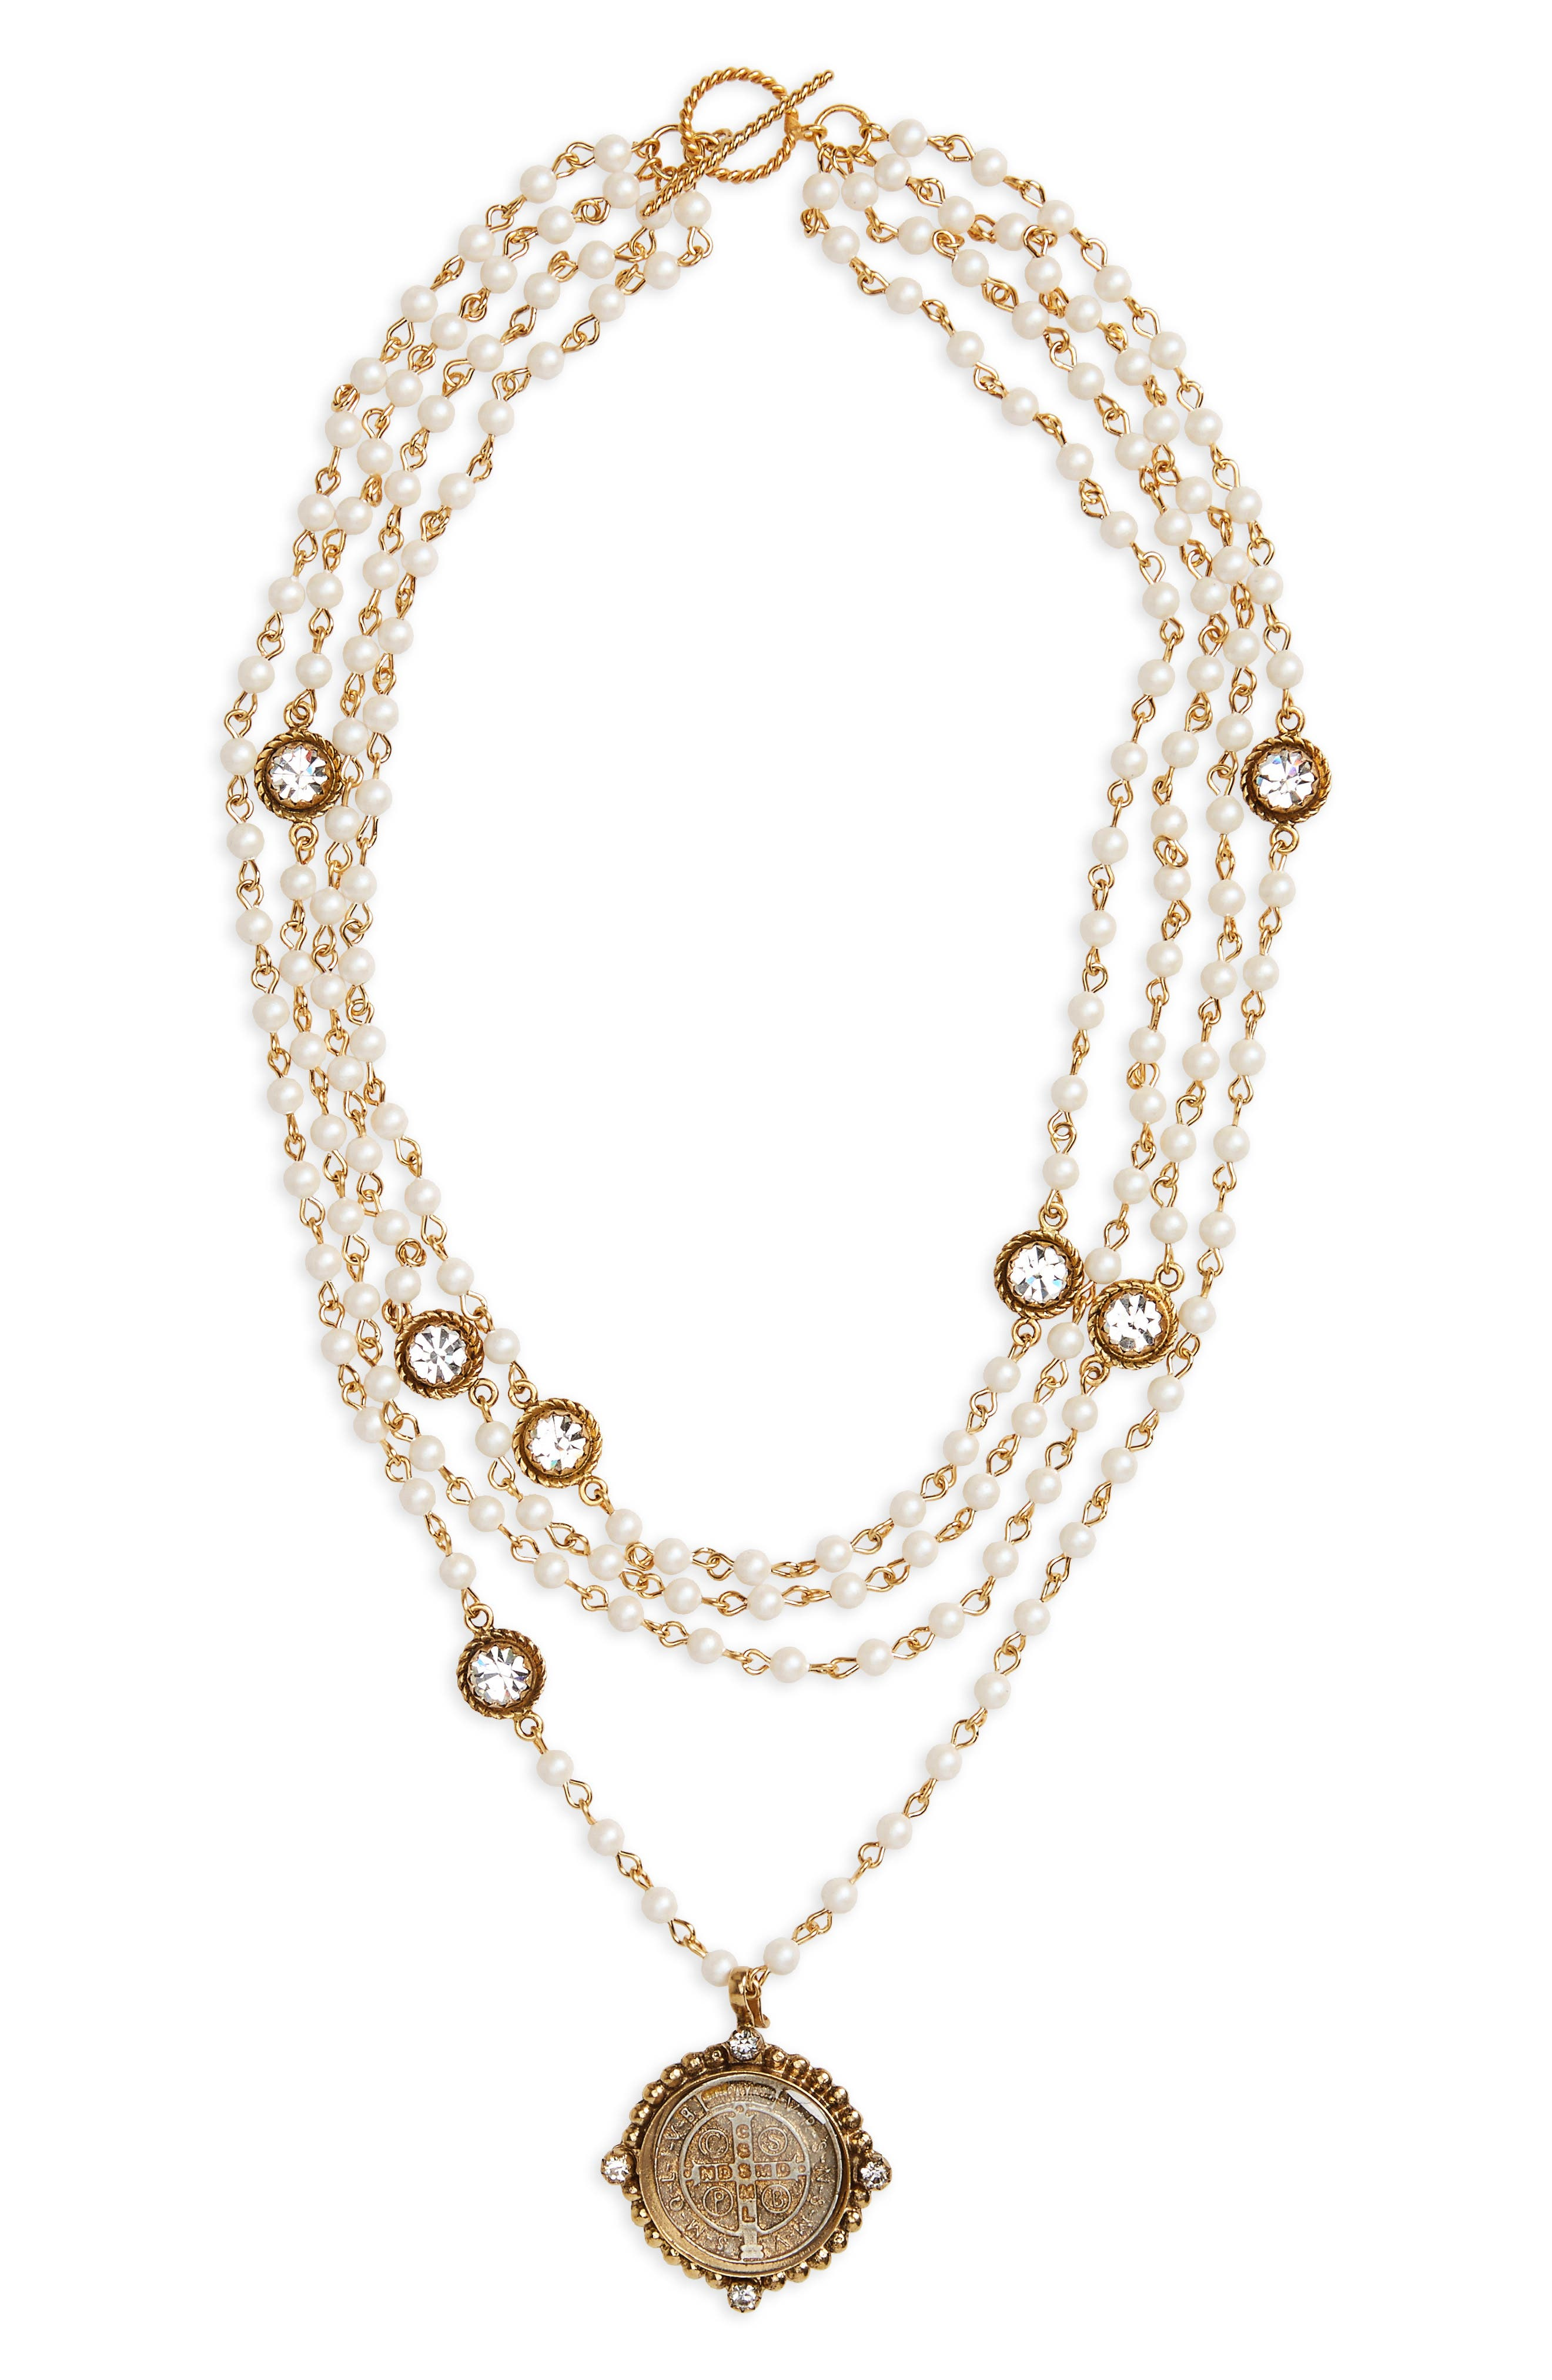 Virgins Saints & Angels San Benito Magdalena Imitation Pearl Necklace (Nordstrom Exclusive)